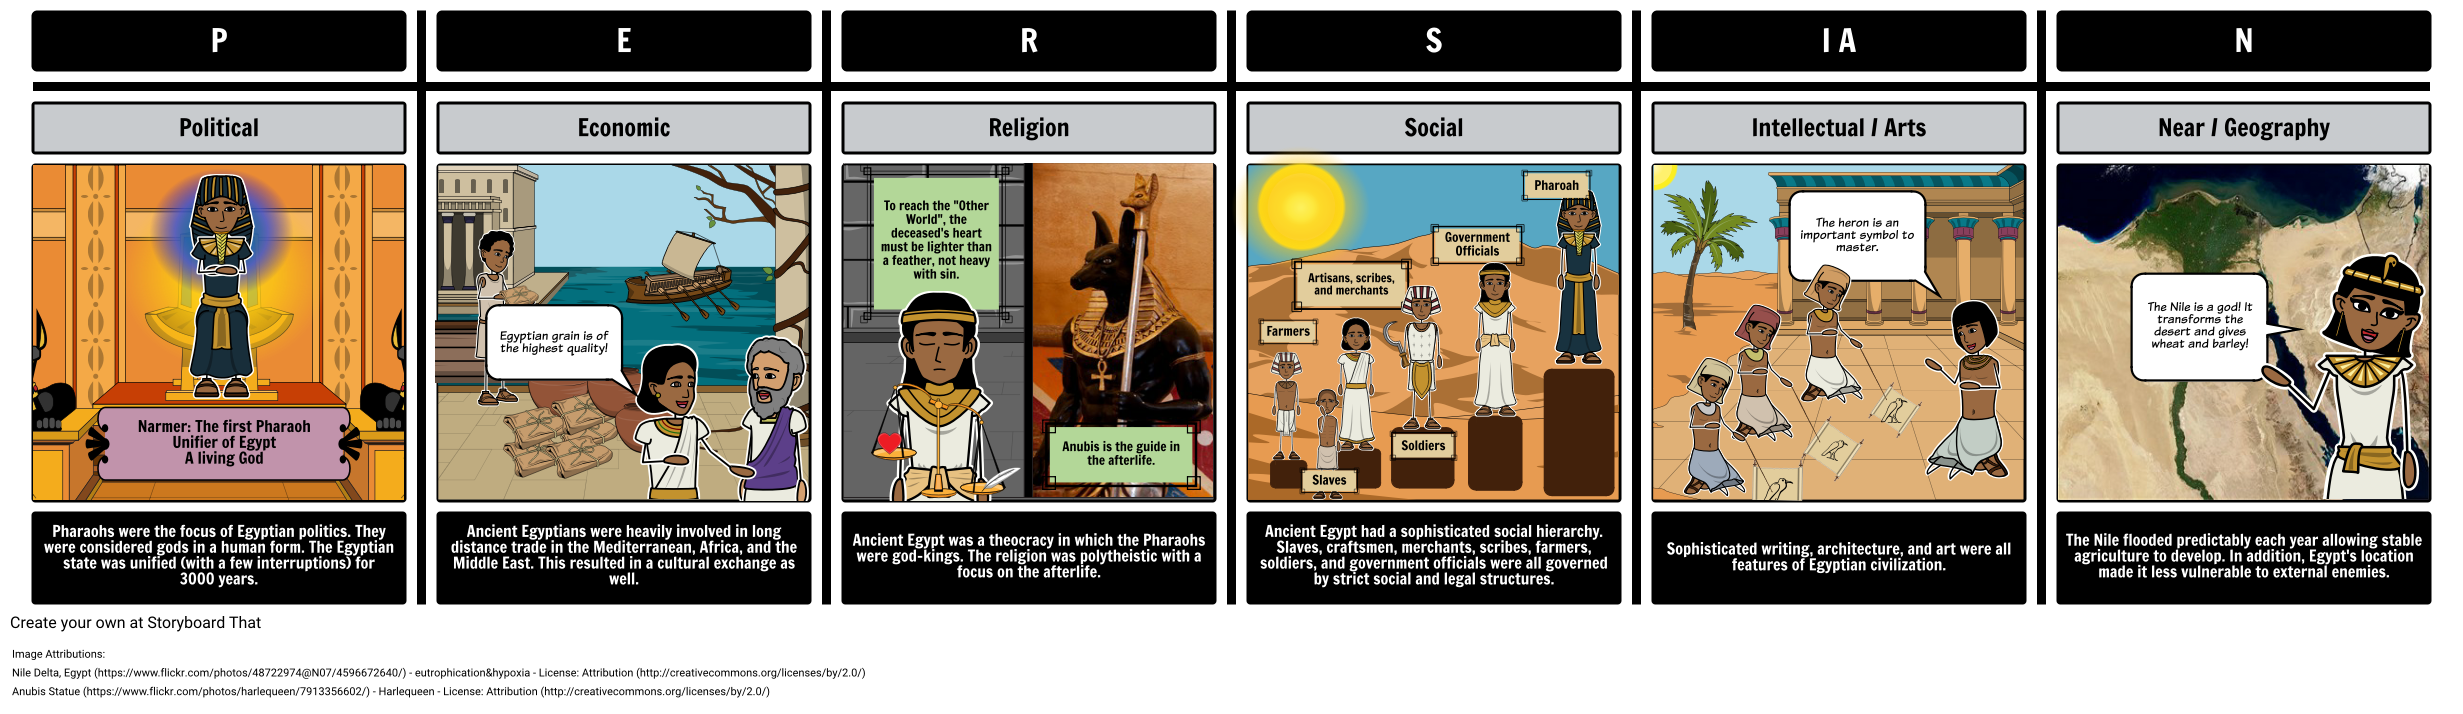 an introduction to the history of the ancient egyptians A history of ancient egypt: the rise and fall of ancient egypt: the history of a civilisation from nile file — an interactive introduction to ancient egypt.